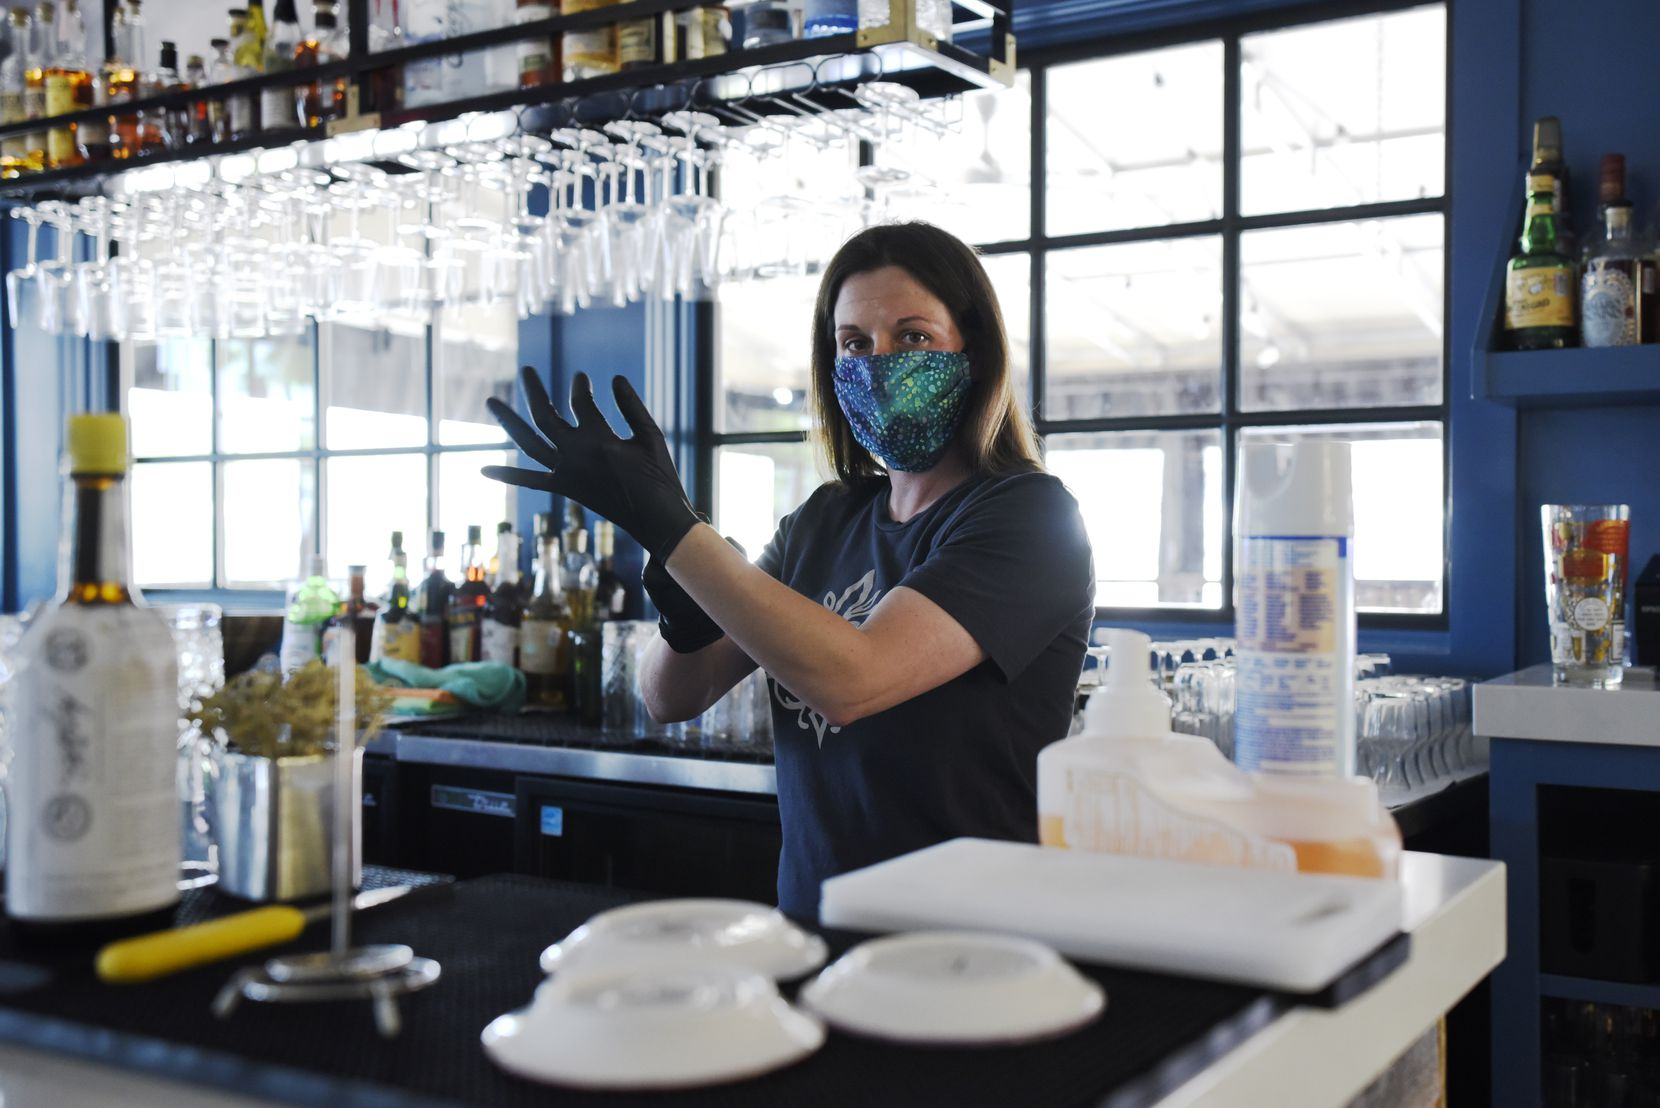 Bartender Tara Dieringer says safety, not money, is her biggest worry as she makes decisions about returning to work. She's a bit uneasy about the close contact with guests, but she's confident of the restaurant's safety and cleaning protocols.